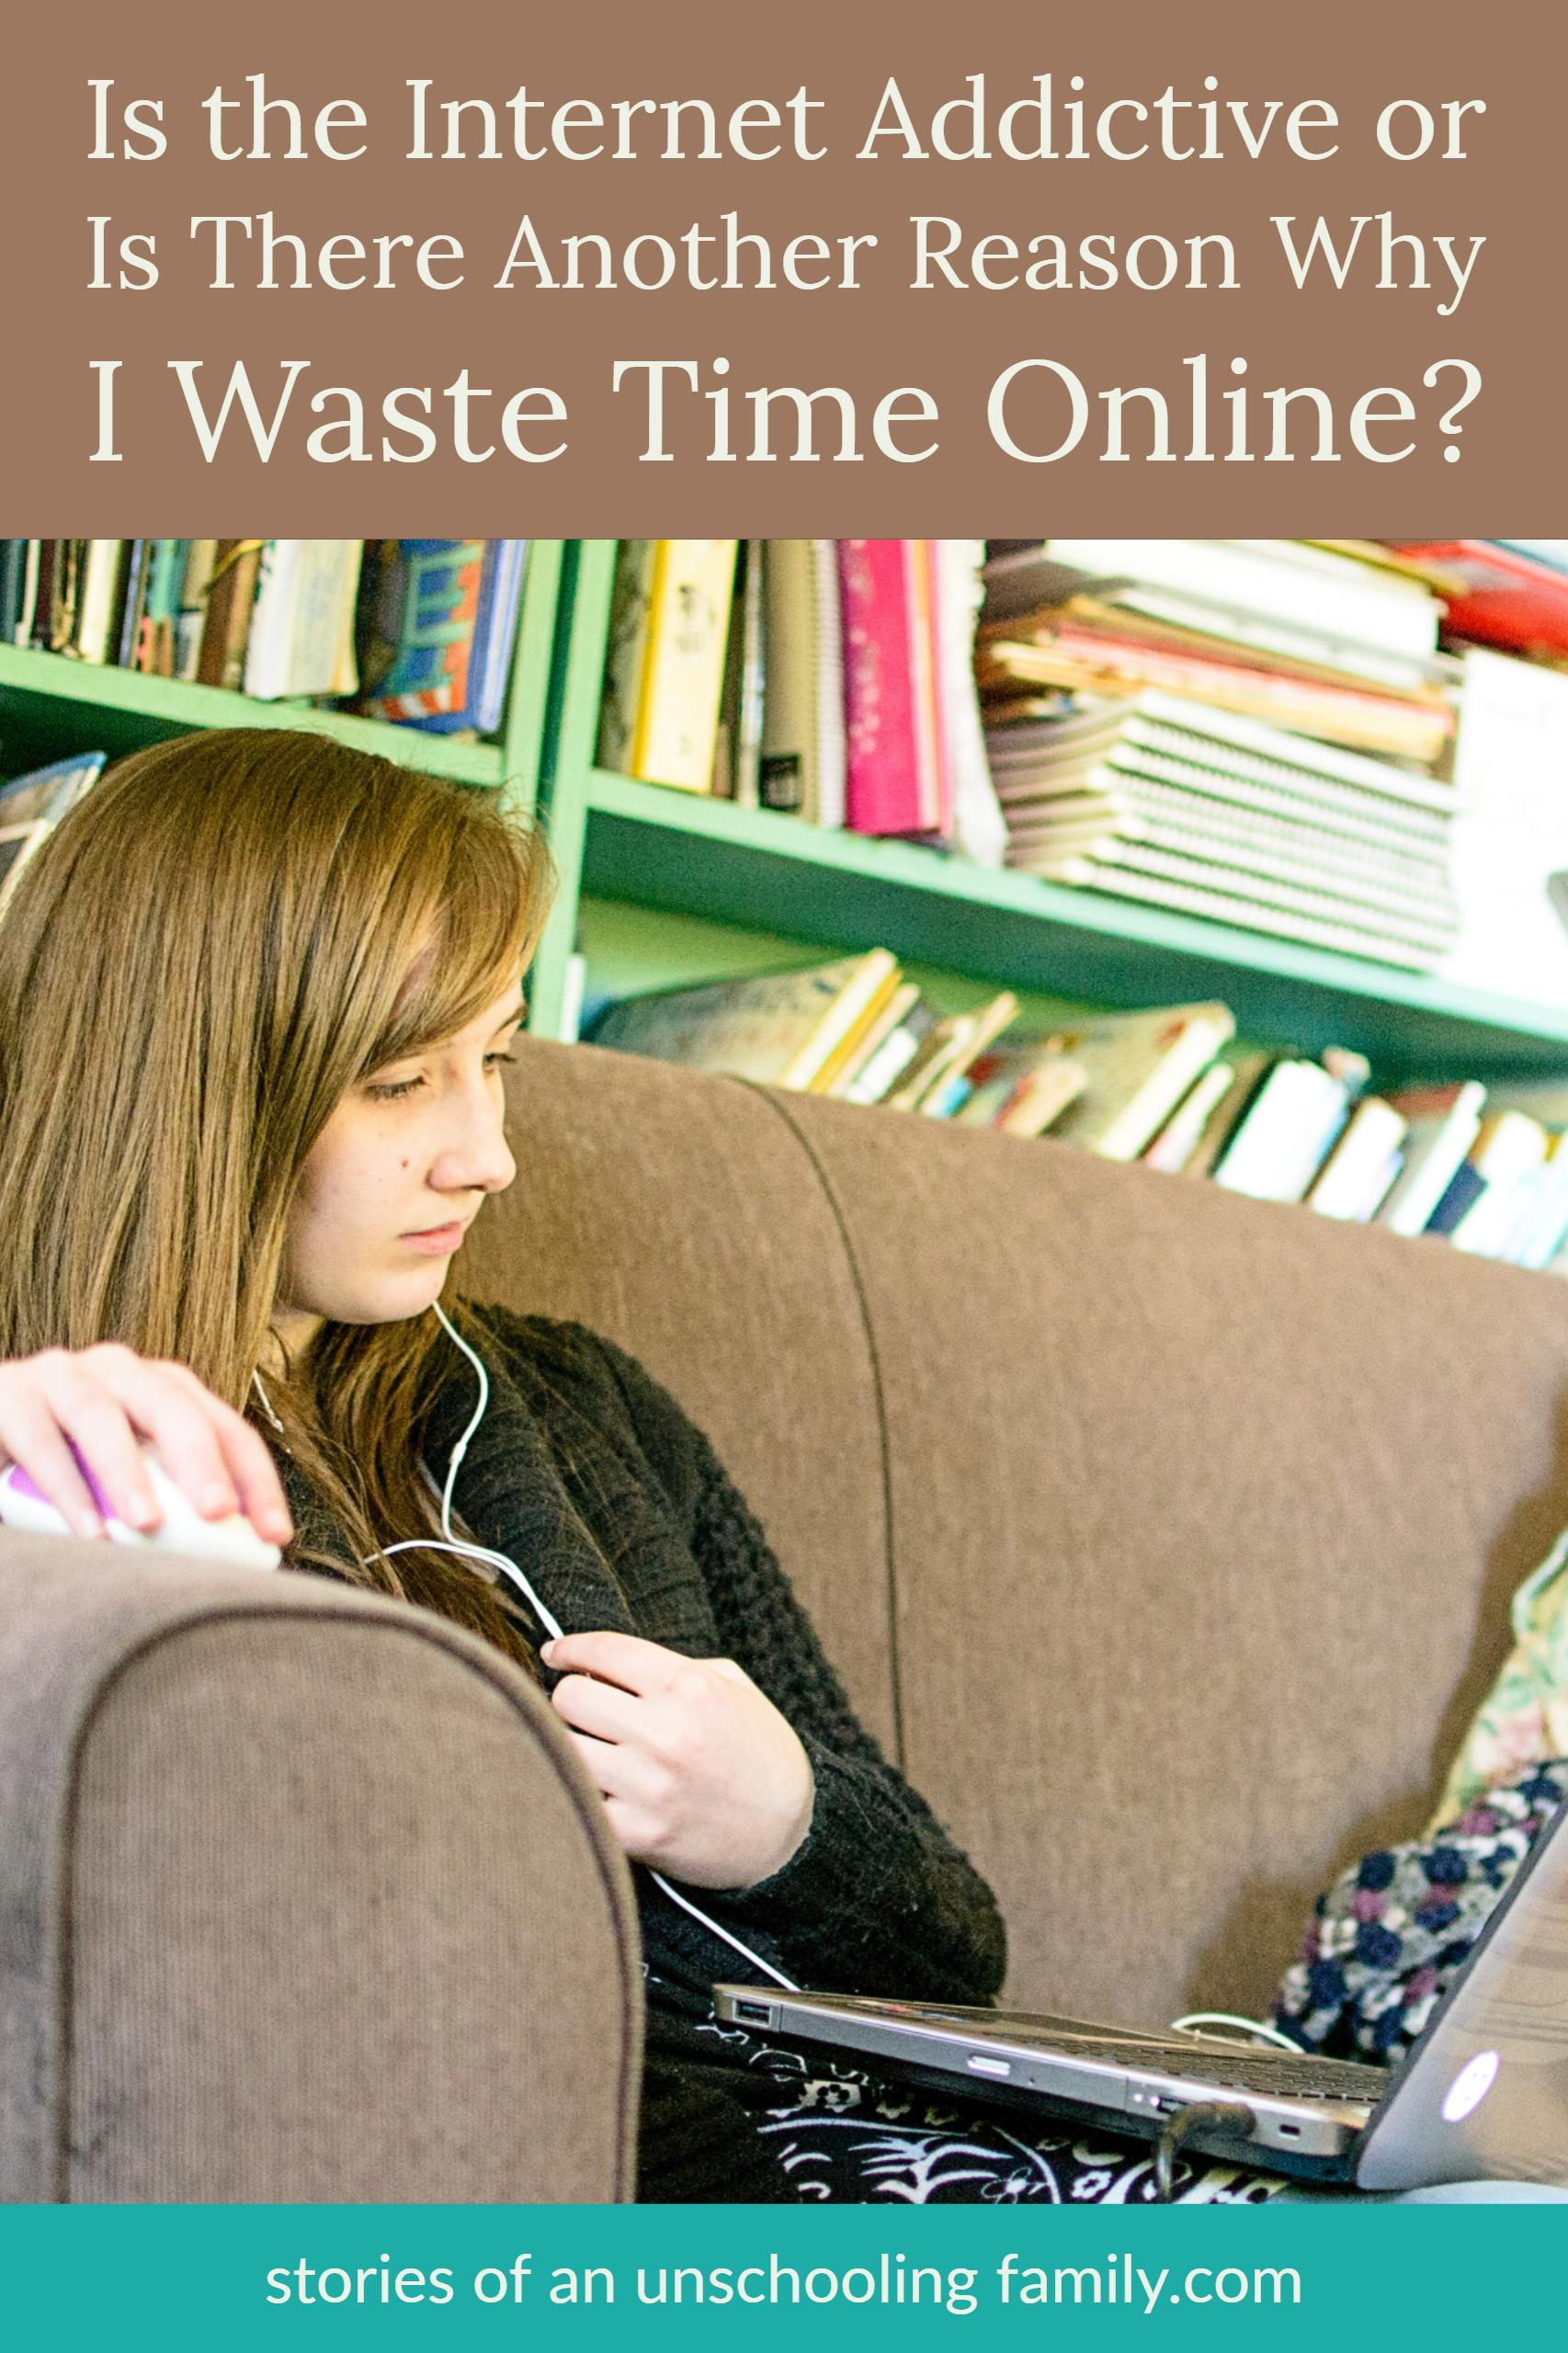 Is the Internet Addictive or is There Another Reason Why I Waste Time Online?